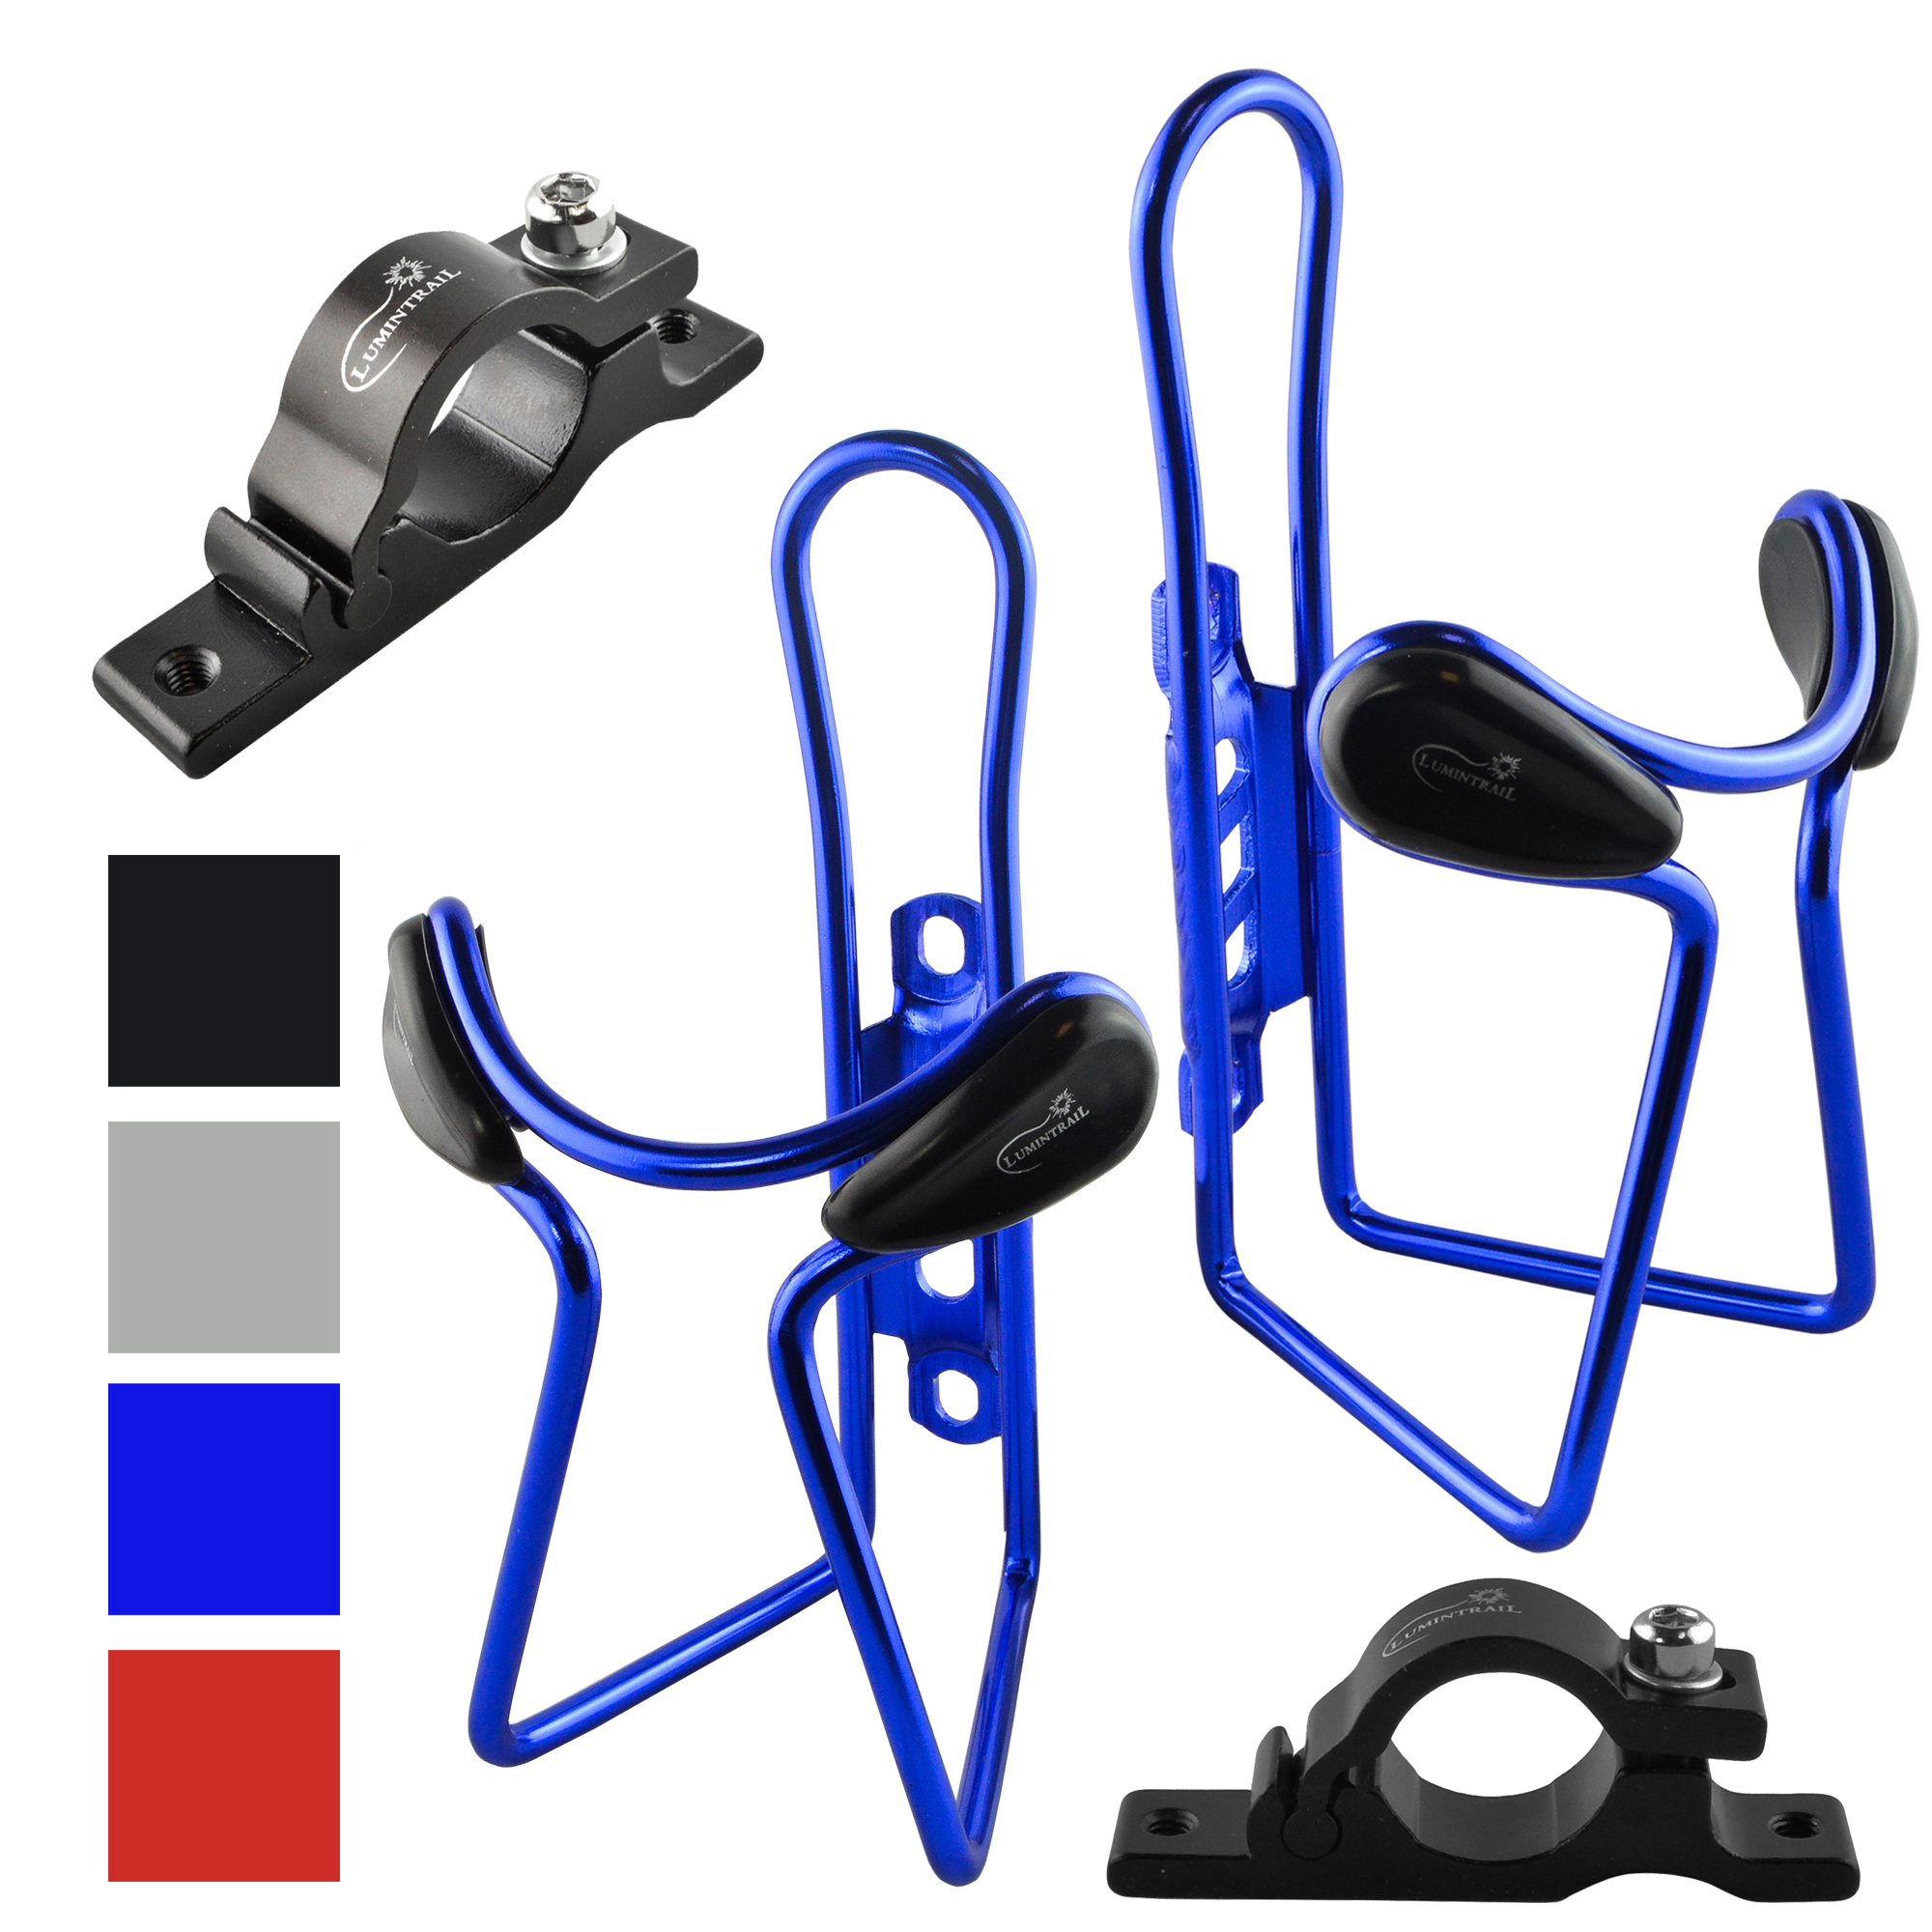 Lumintrail 2 Pack Bike Bottle Holders w/ Handlebar Mount Adapter lightweight aluminum alloy bicycle water cage